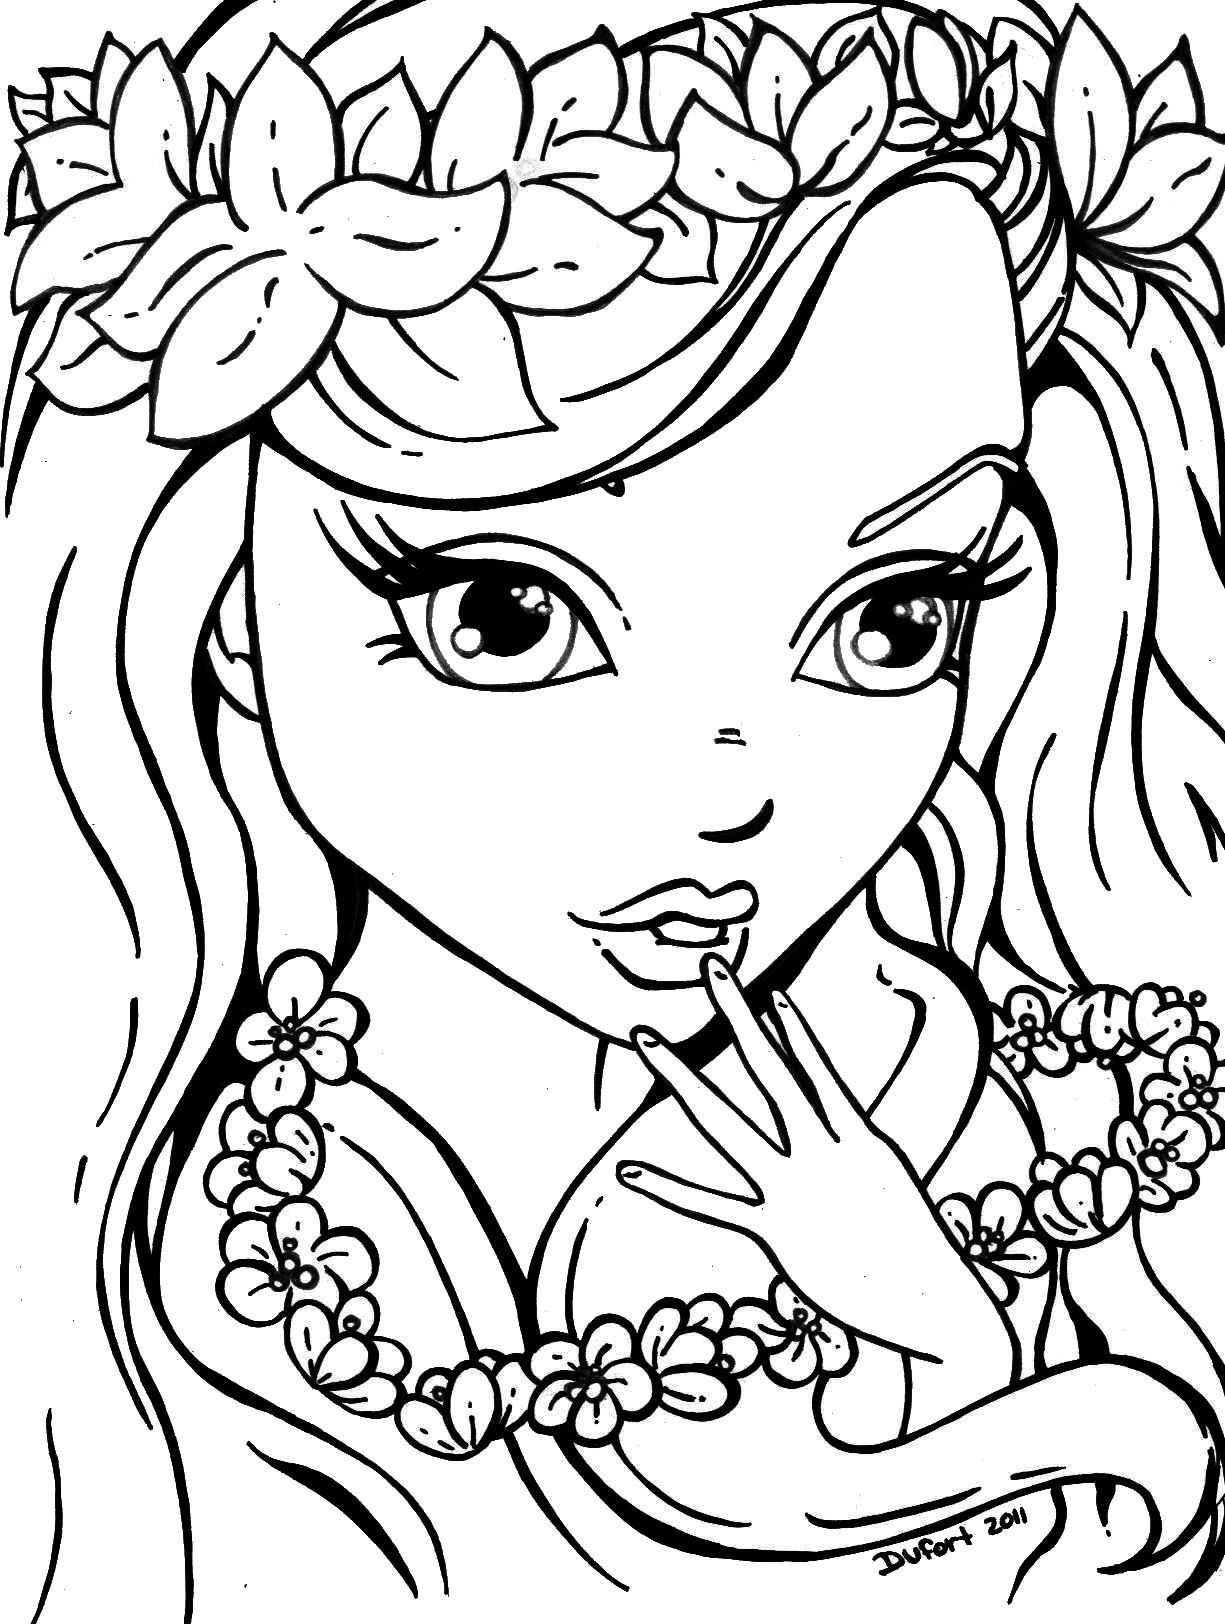 Pin By A S On Colouring Pages For Girls Mermaid Coloring Pages Cool Coloring Pages Cute Coloring Pages